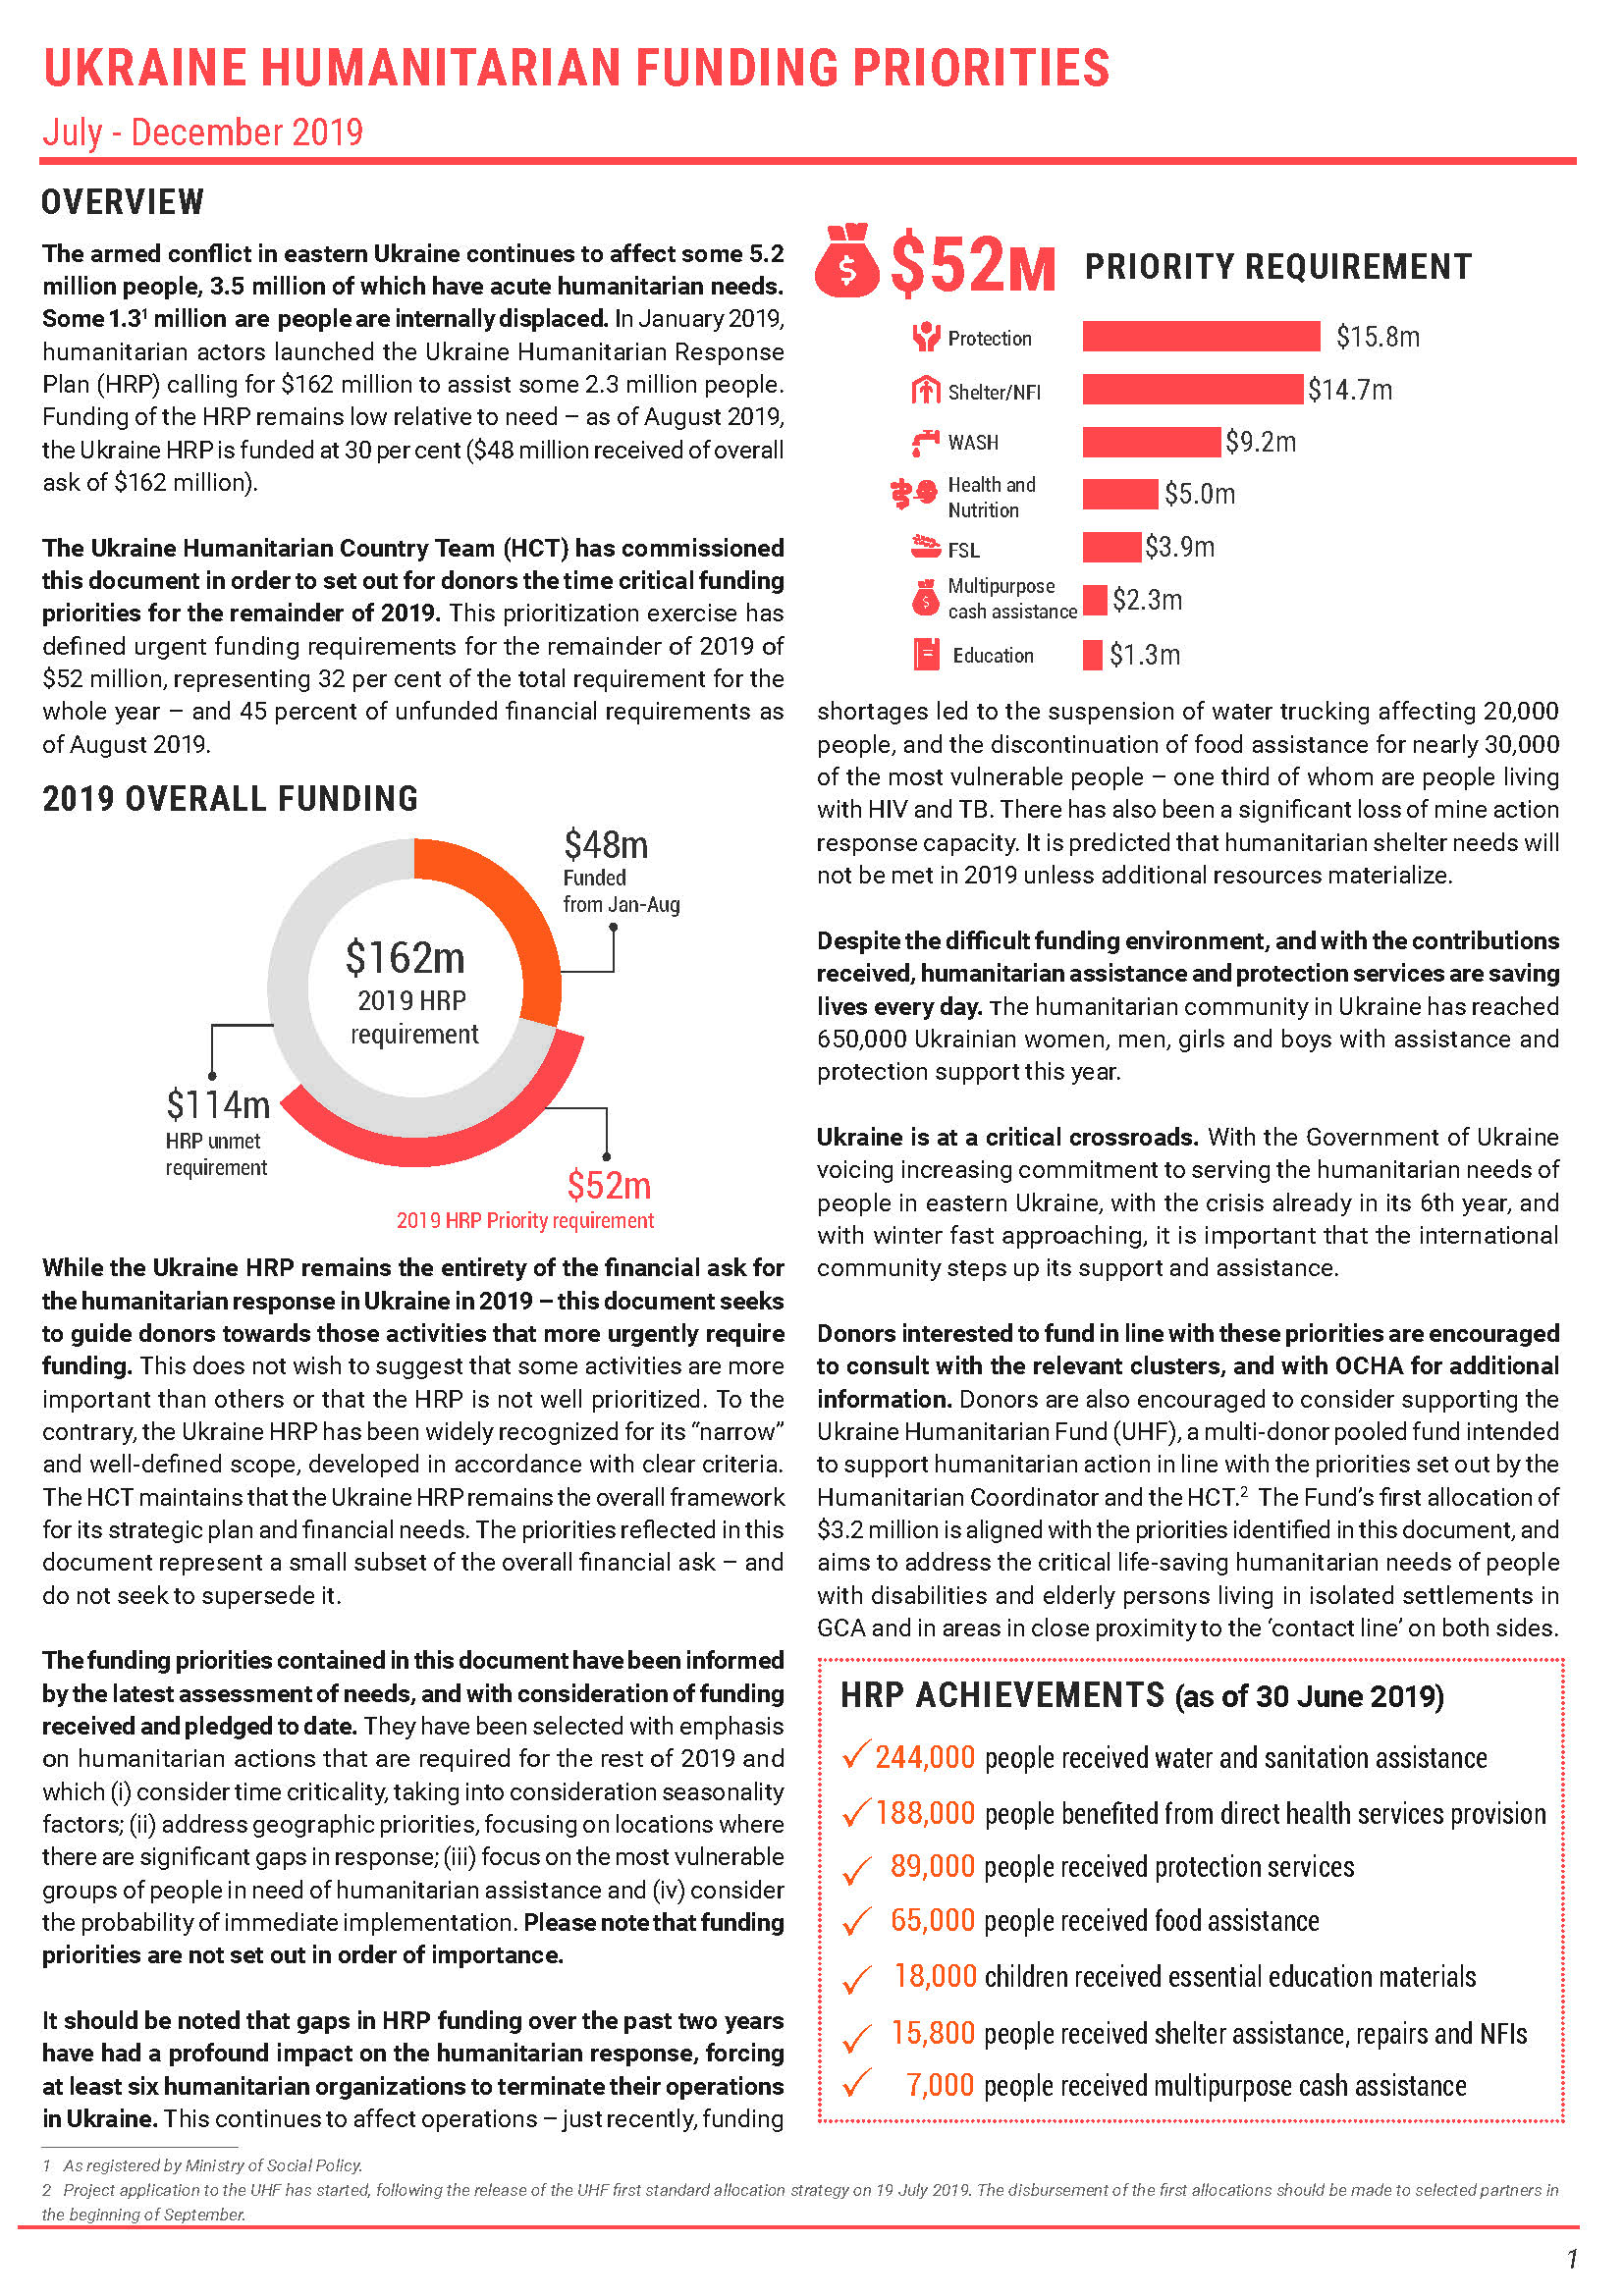 Ukraine Humanitarian Funding Priorities - 20 August 2019